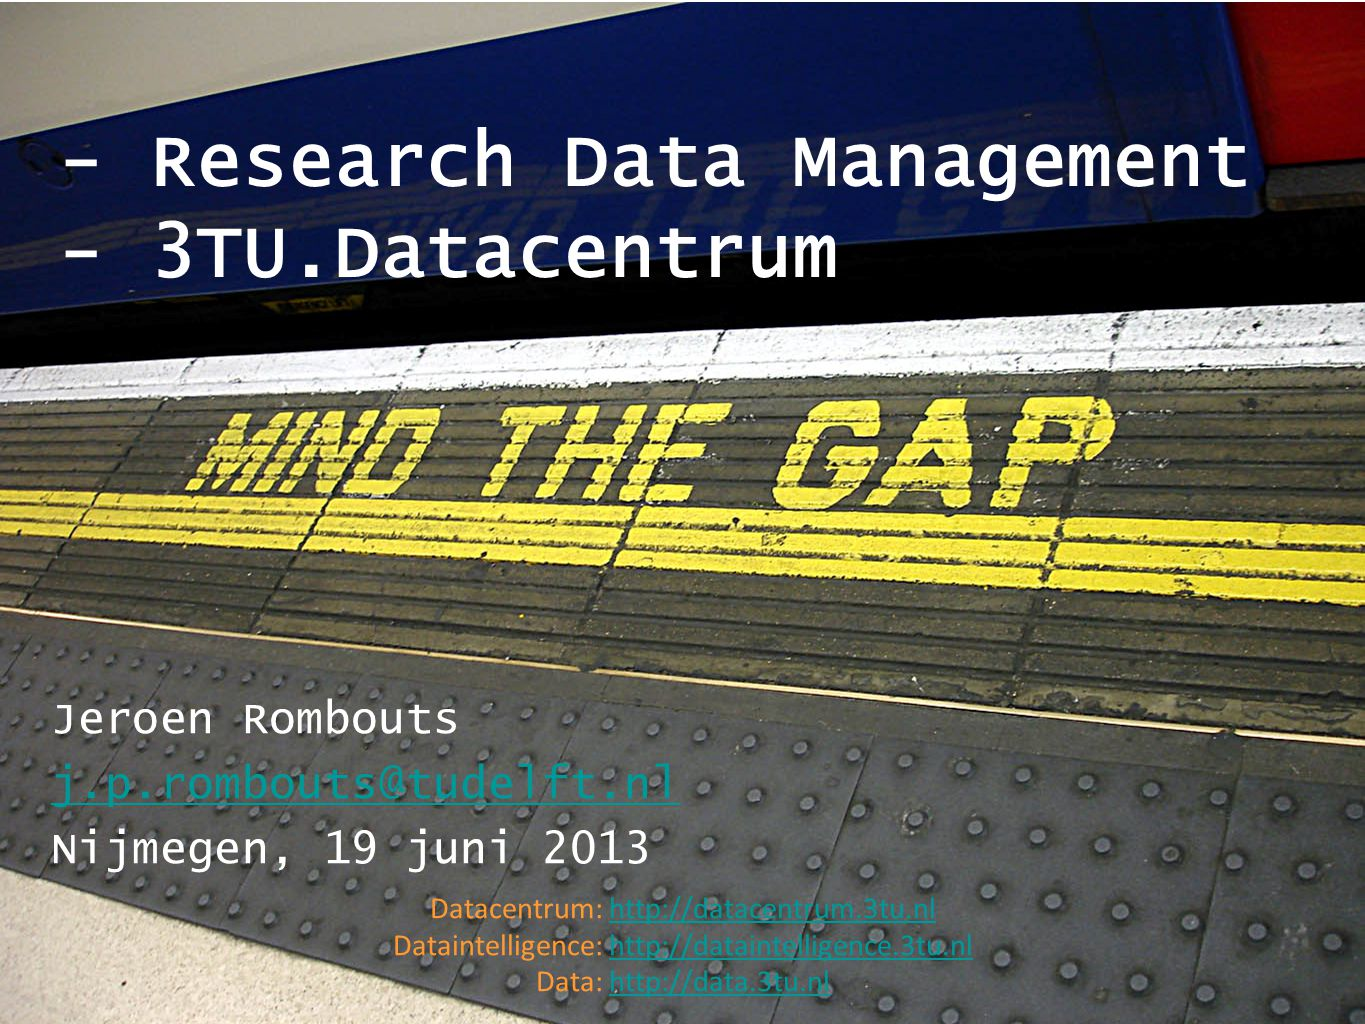 - Research Data Management - 3TU.Datacentrum